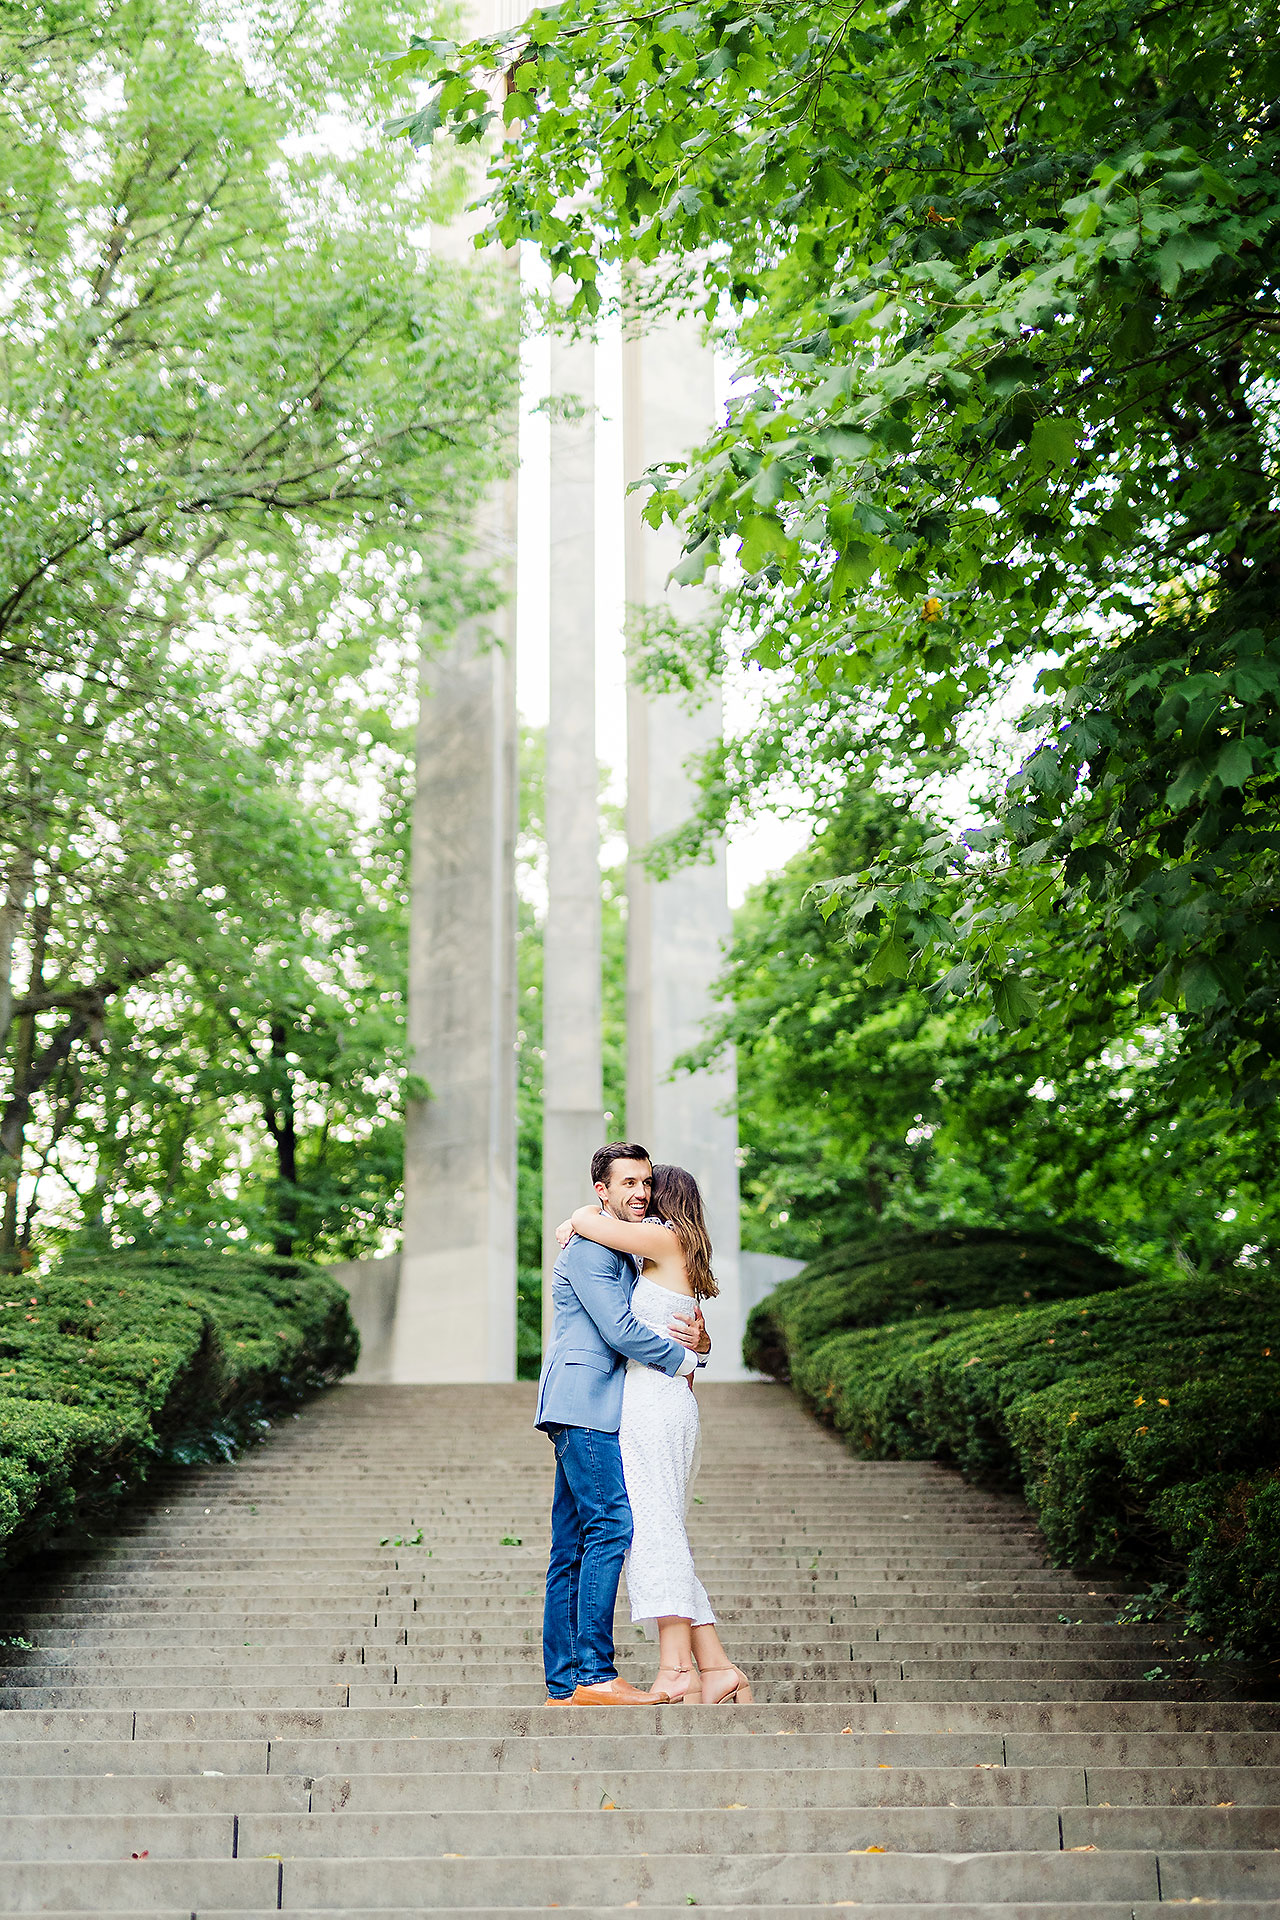 Kate Sawyer Holcomb Gardens Engagement Session 134